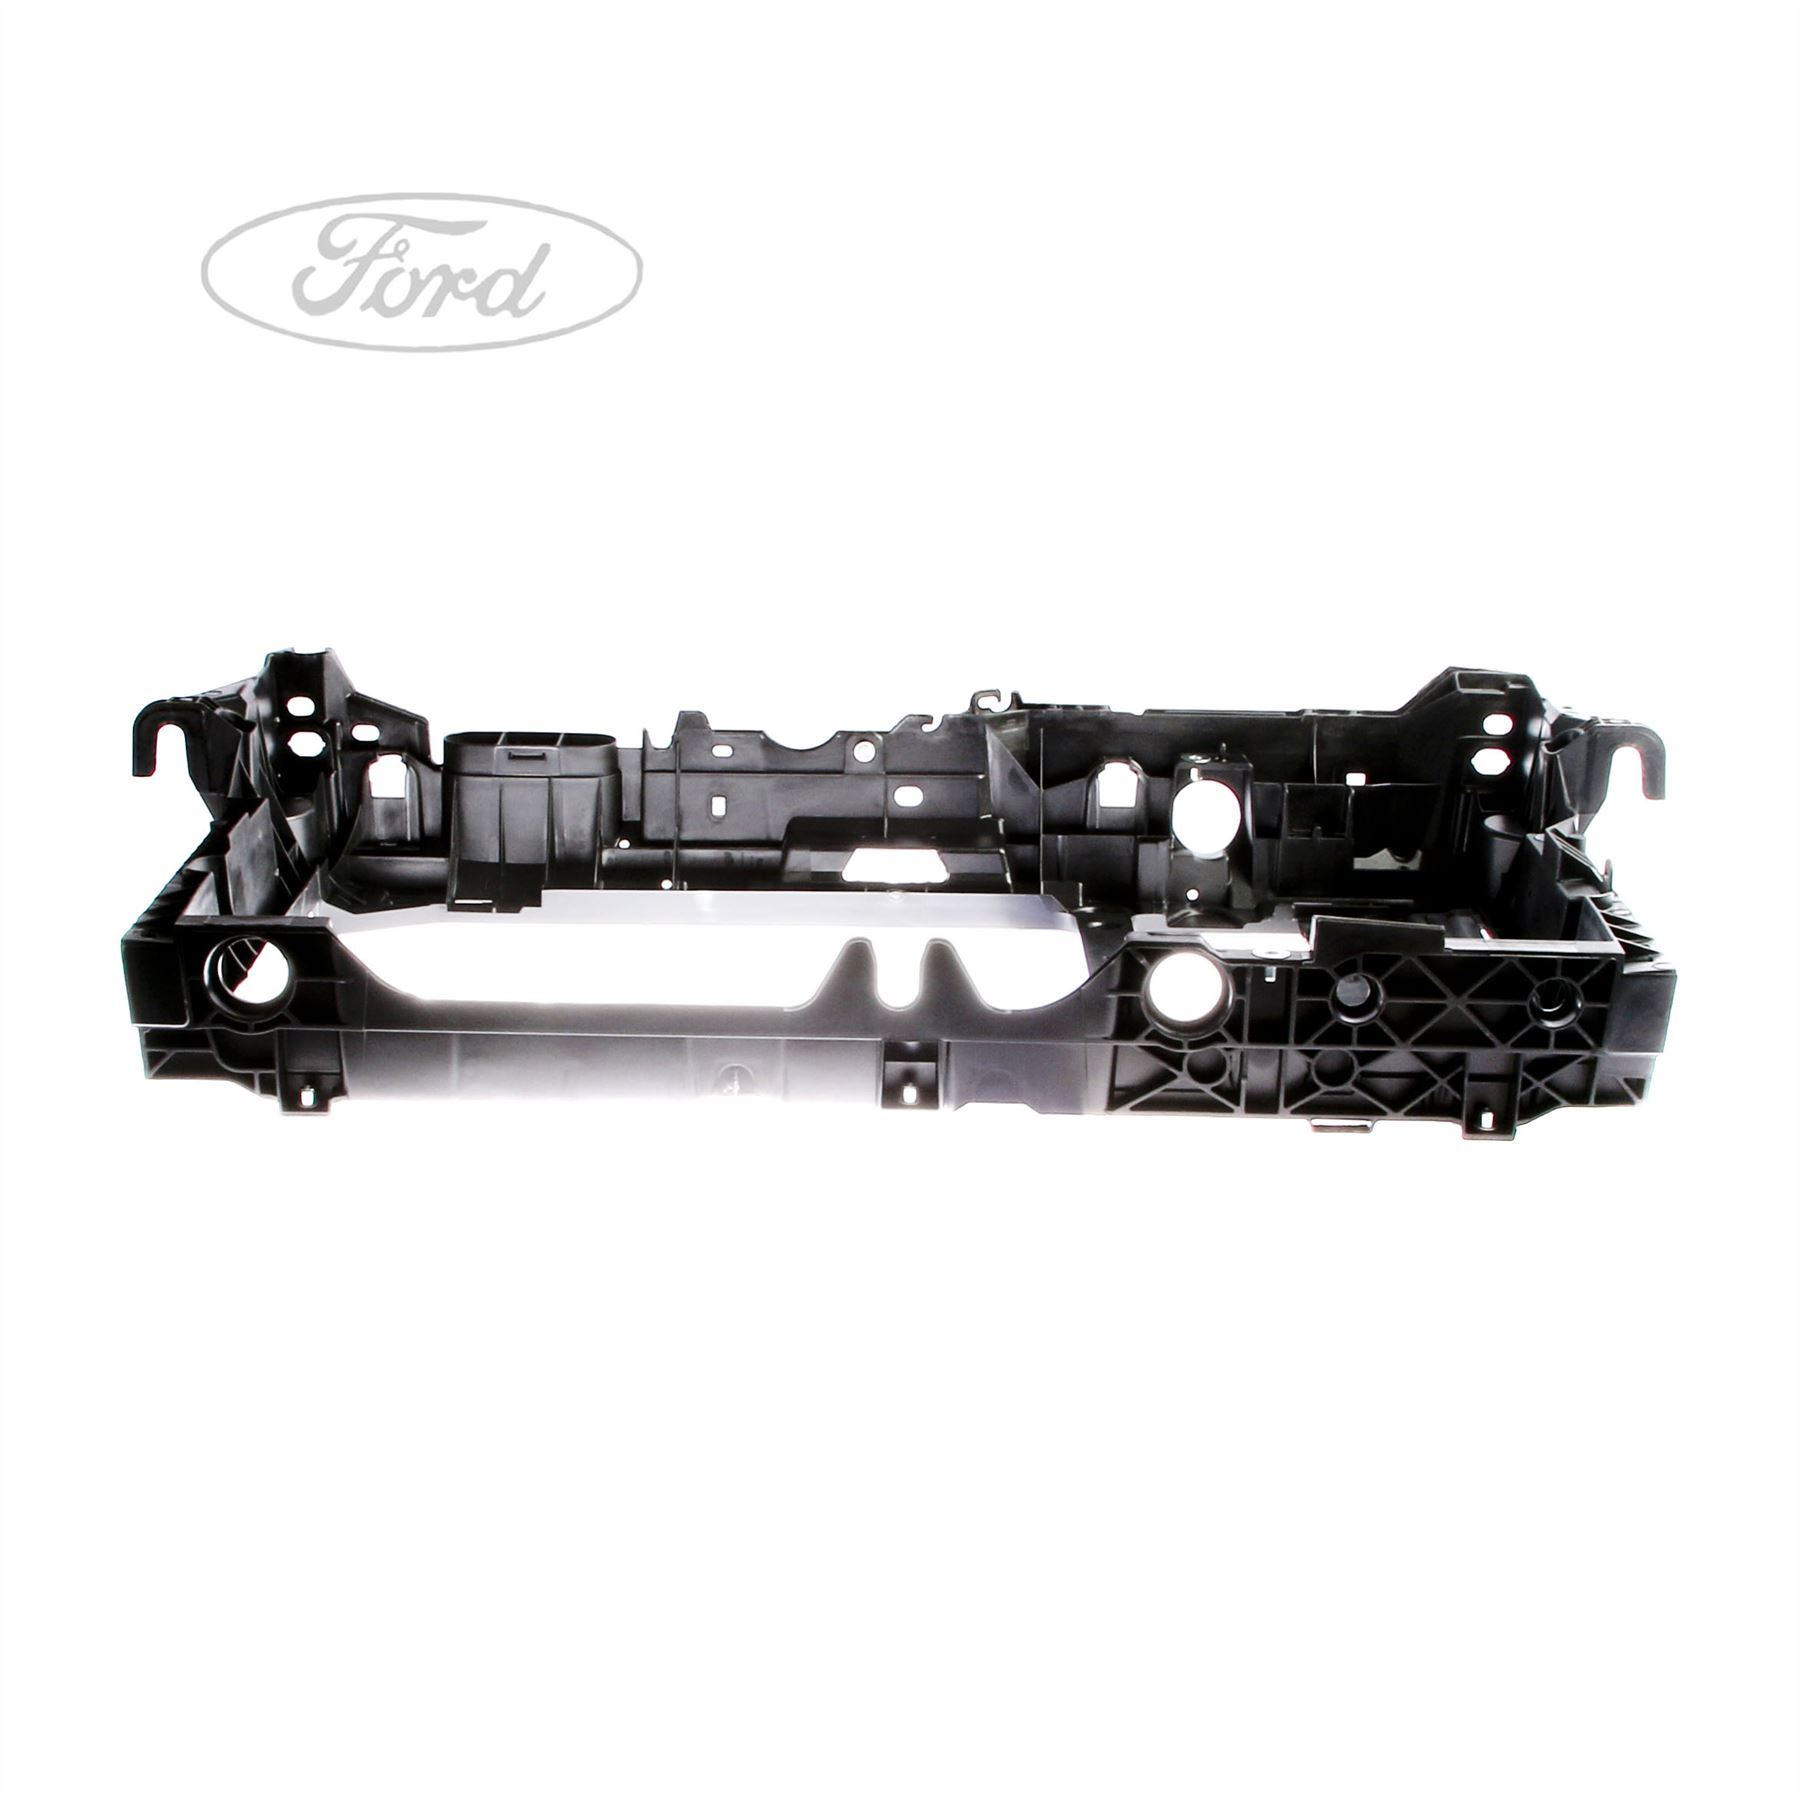 Genuine Ford Front End Body Reinforcement Panel 1800030